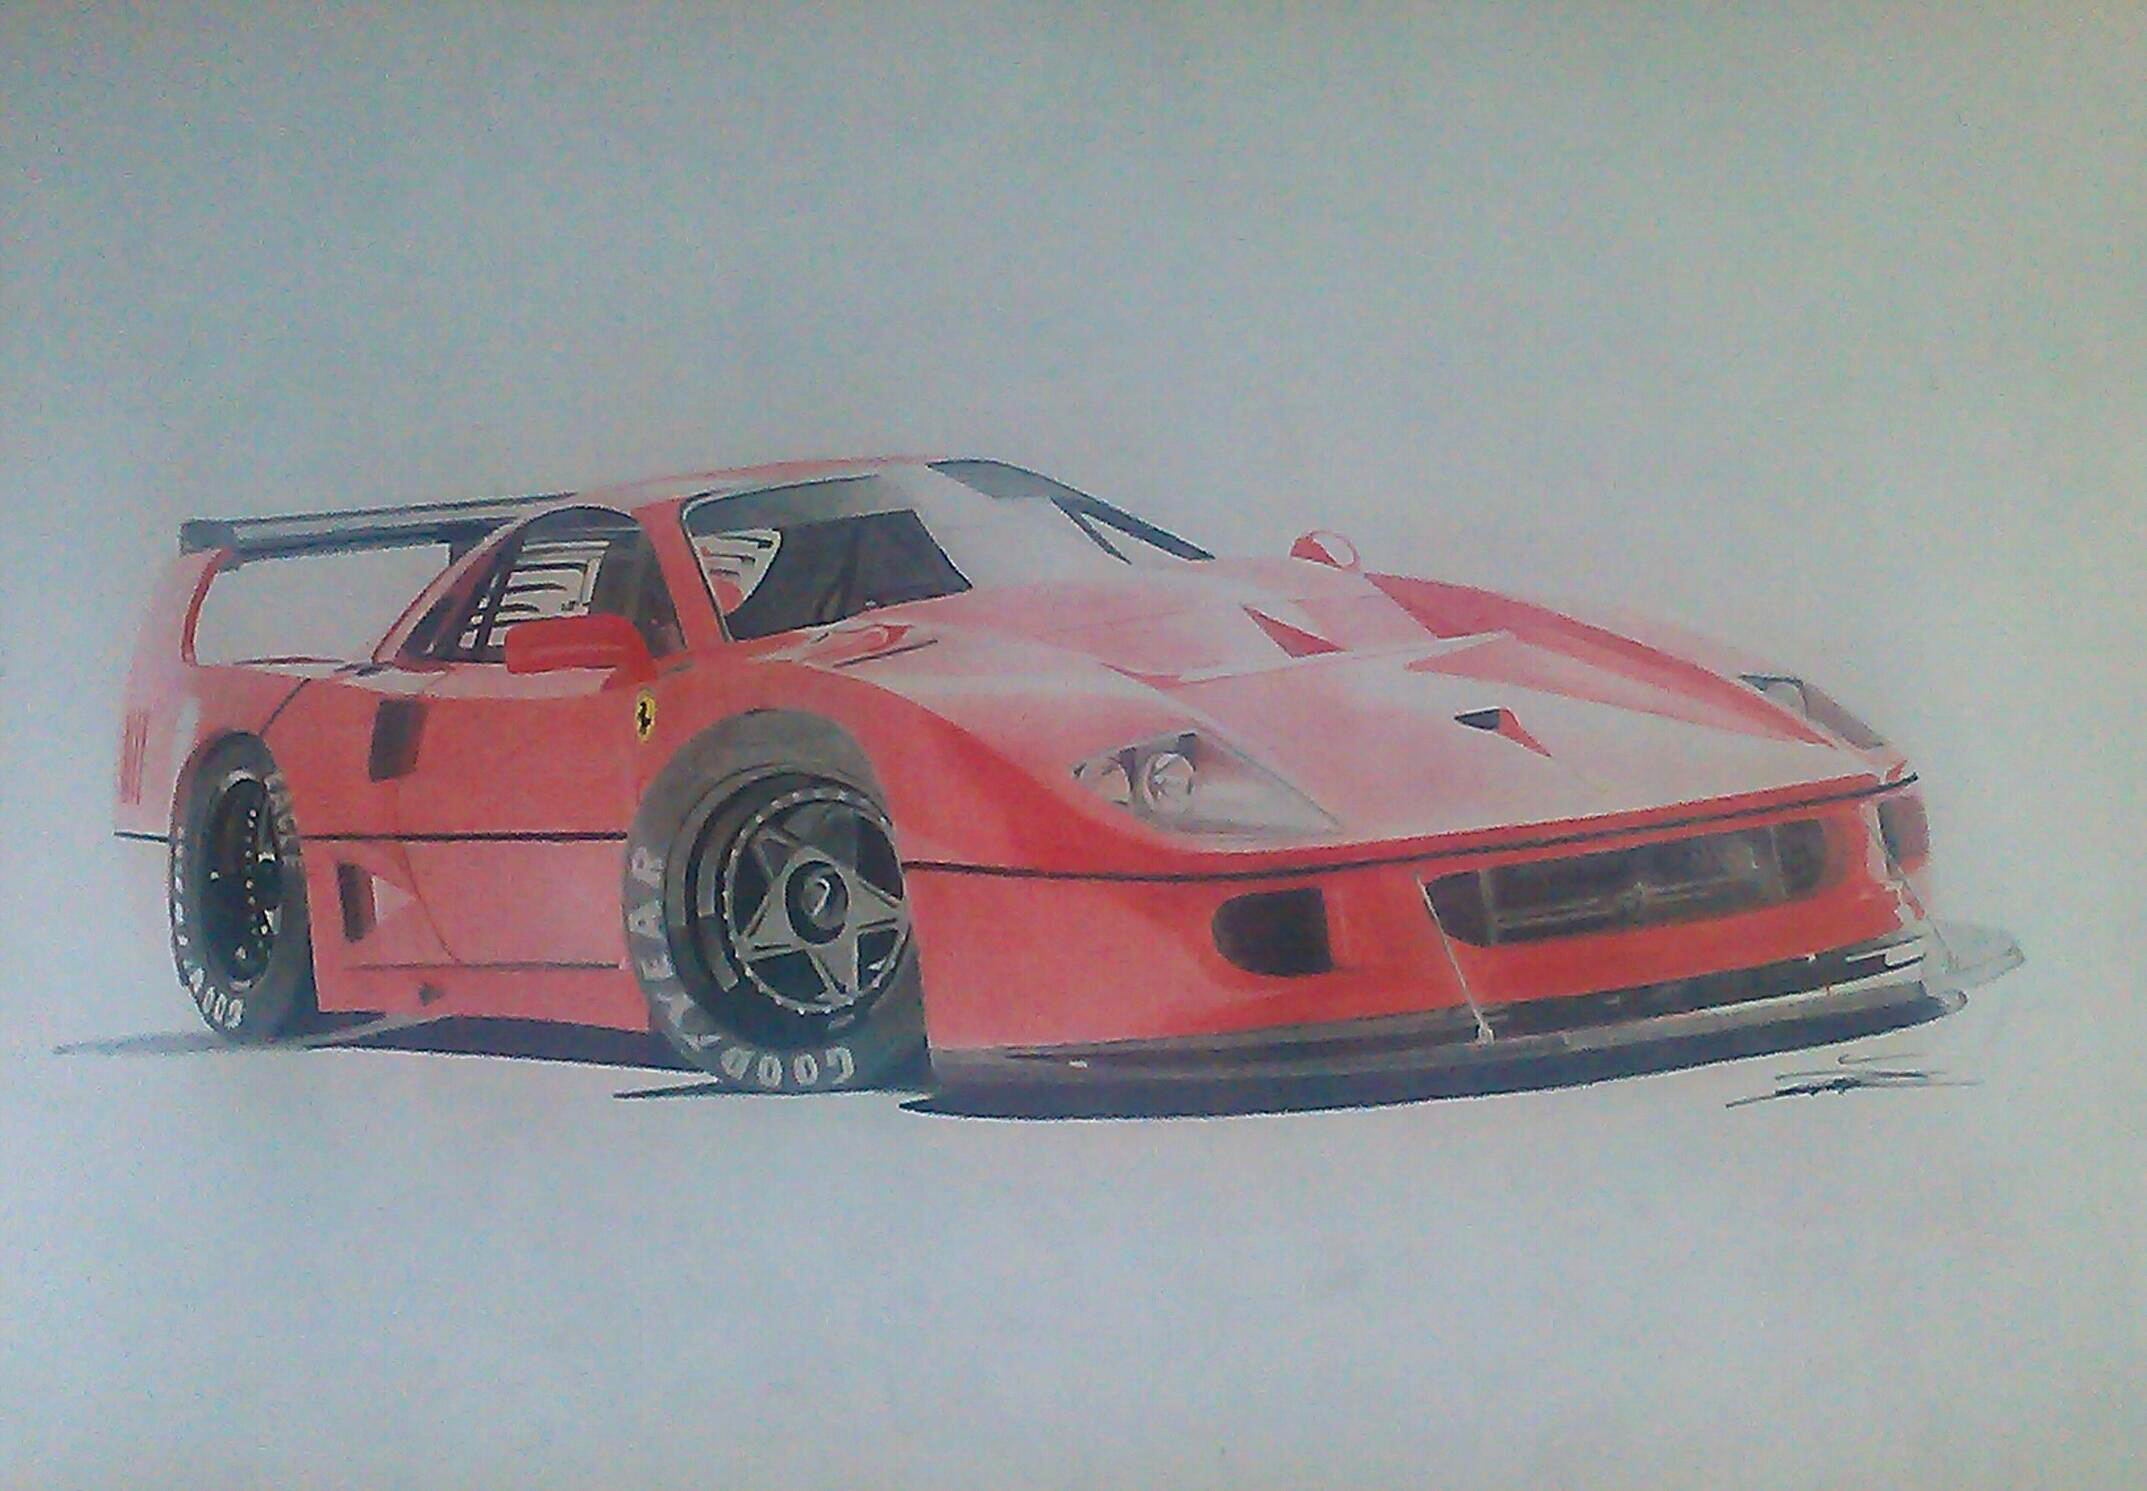 Ferrari F40 Lm Done With Colored Pencils Only